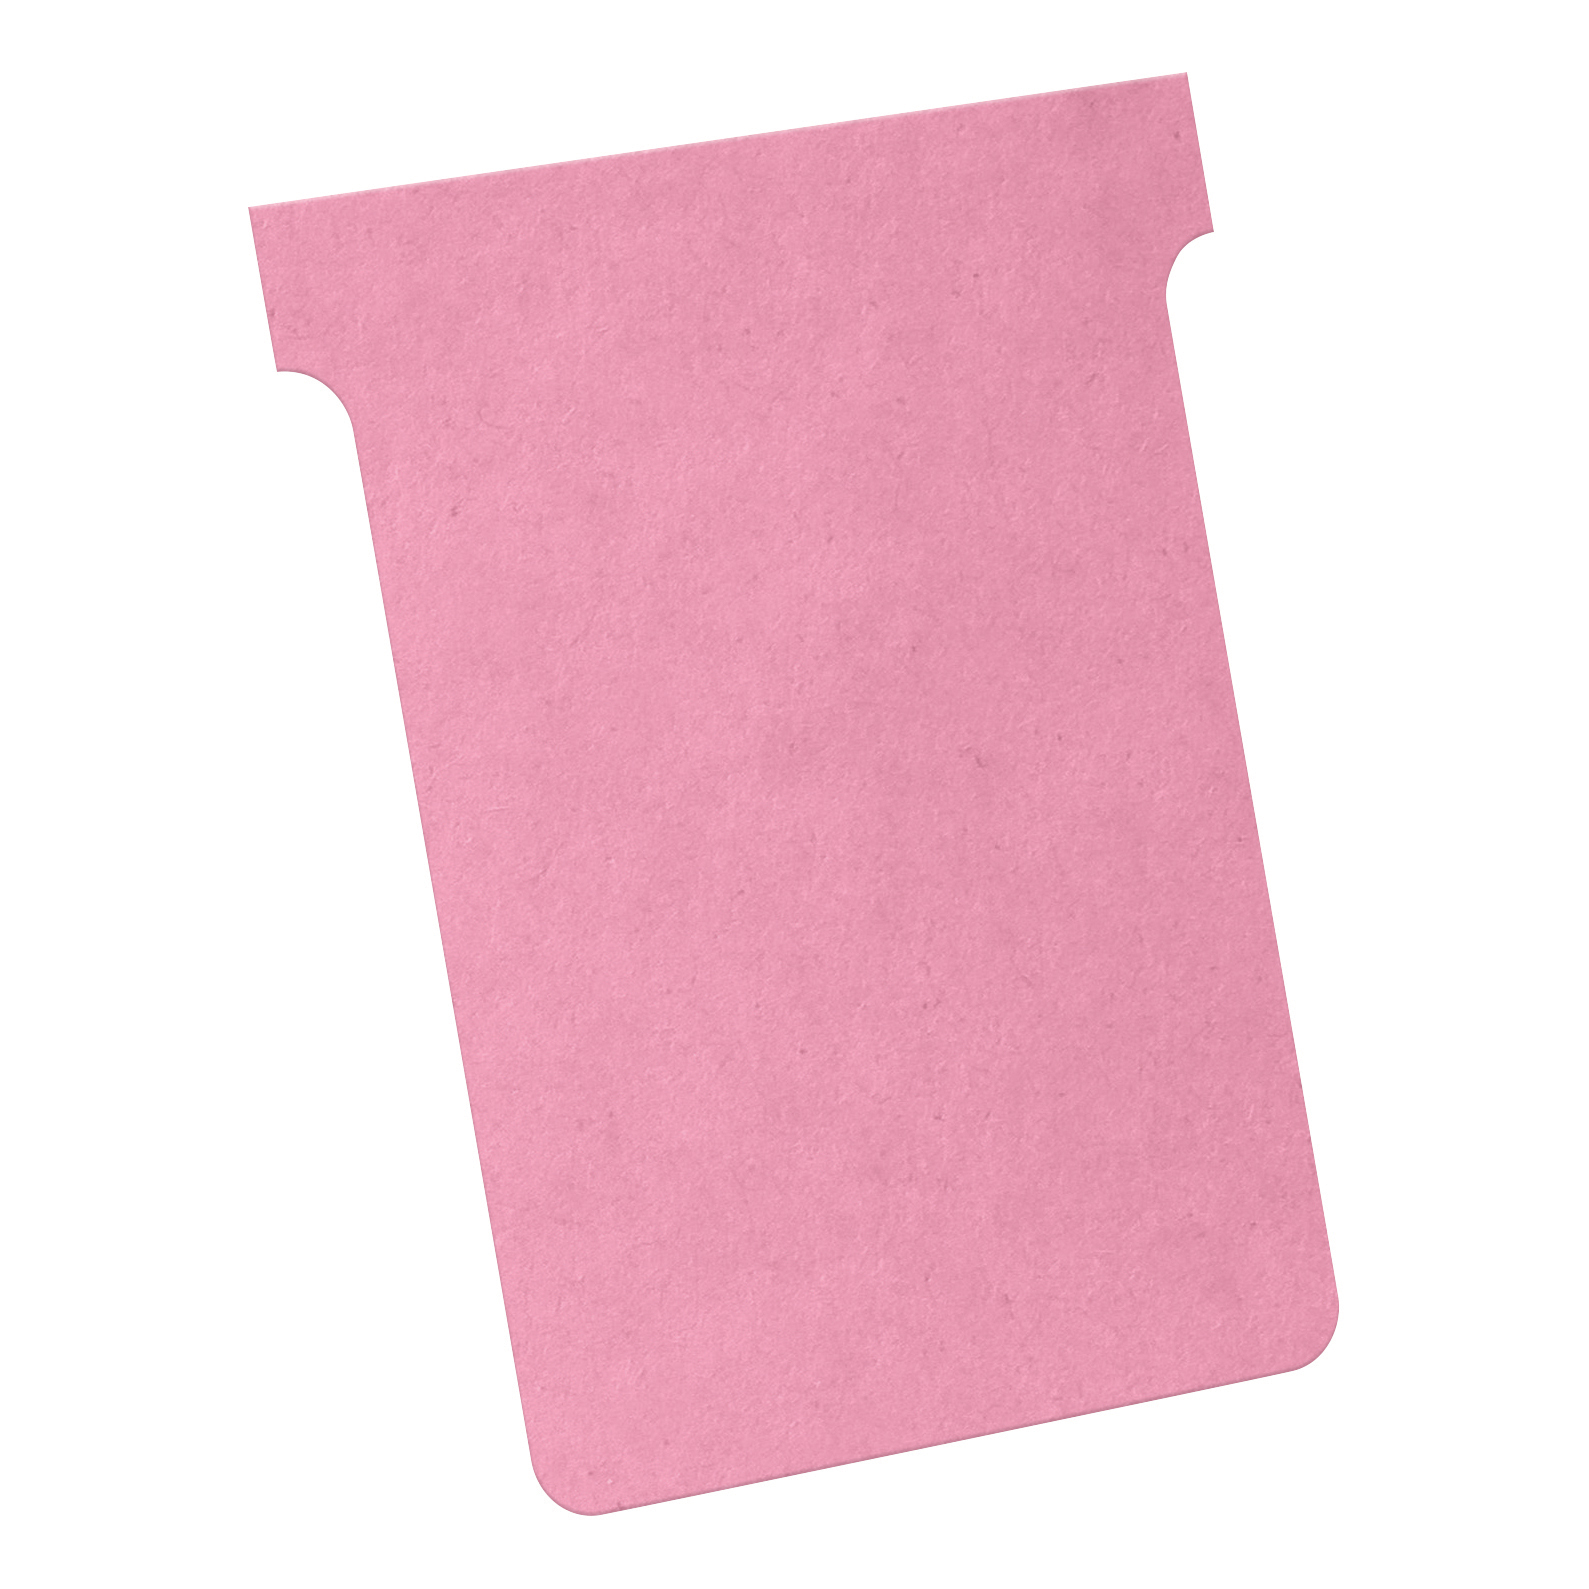 Nobo T-Cards 160gsm Tab Top 15mm W93x Bottom W80x Full H120mm Size 3 Pink Ref 2003008 Pack 100